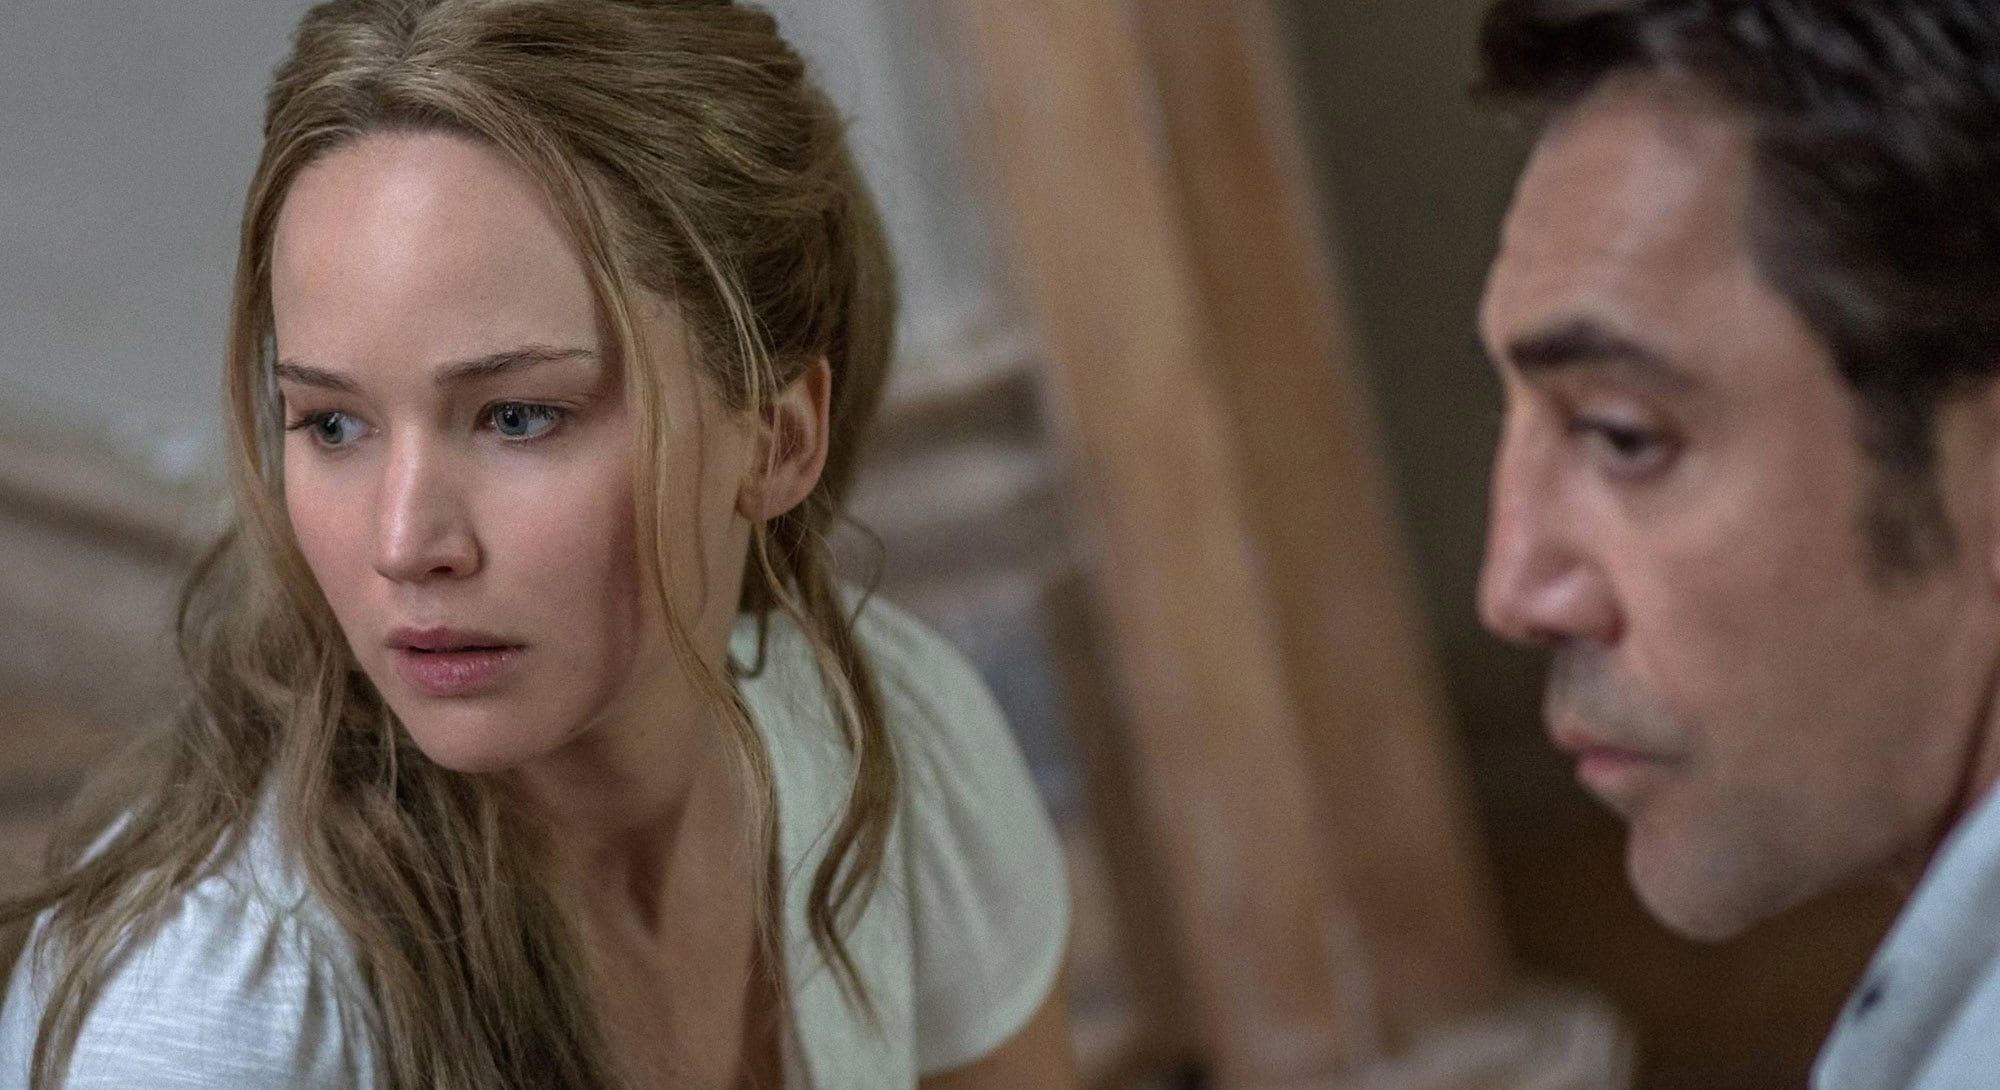 """Directed by Darren Aronofsky, 'mother!' is a """"riveting psychological thriller"""" focusing on love & devotion and the sacrifices we are often forced to make."""